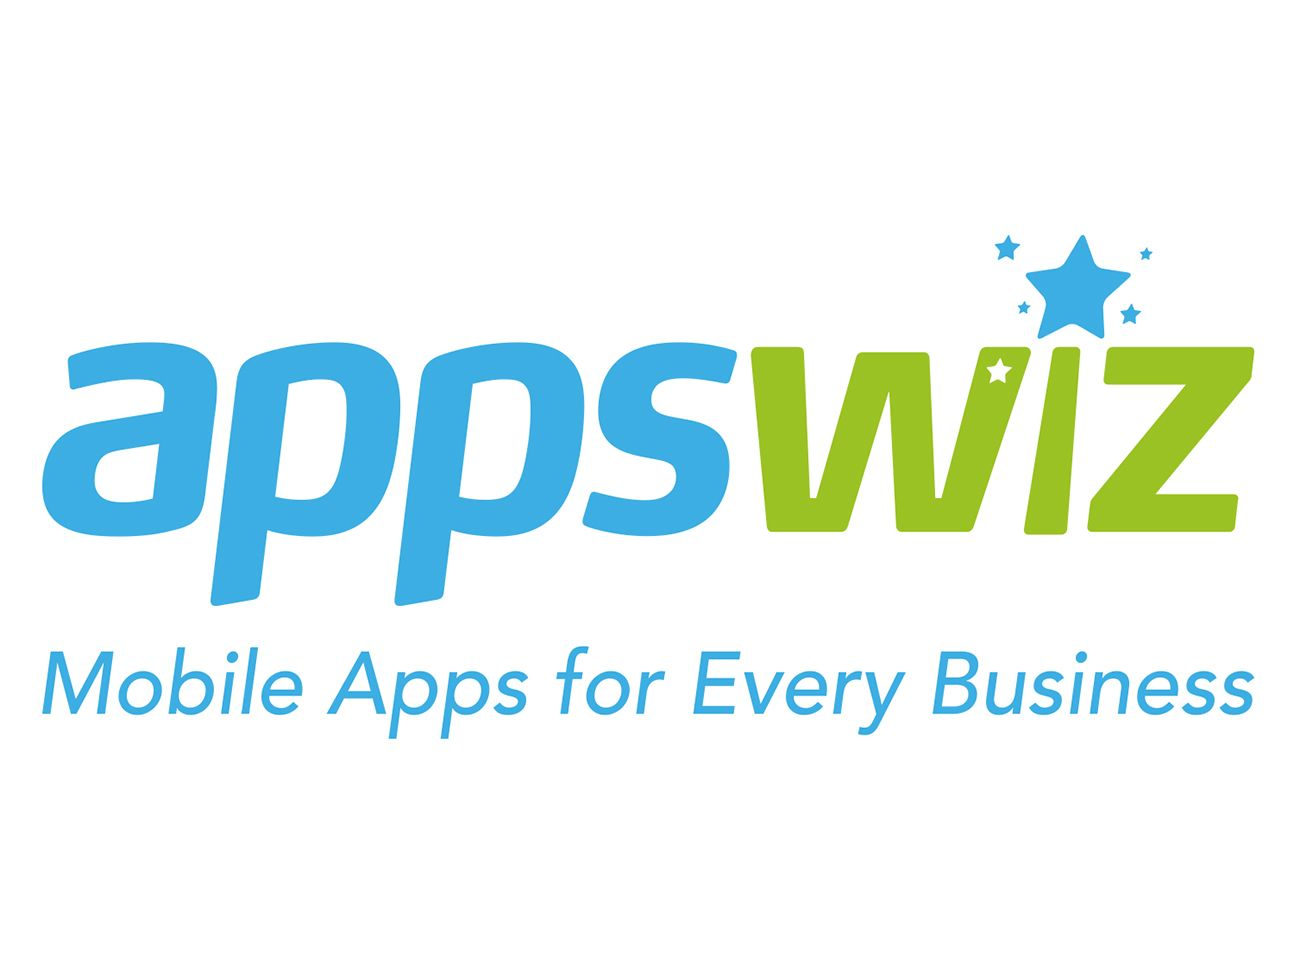 Mobile apps for every business